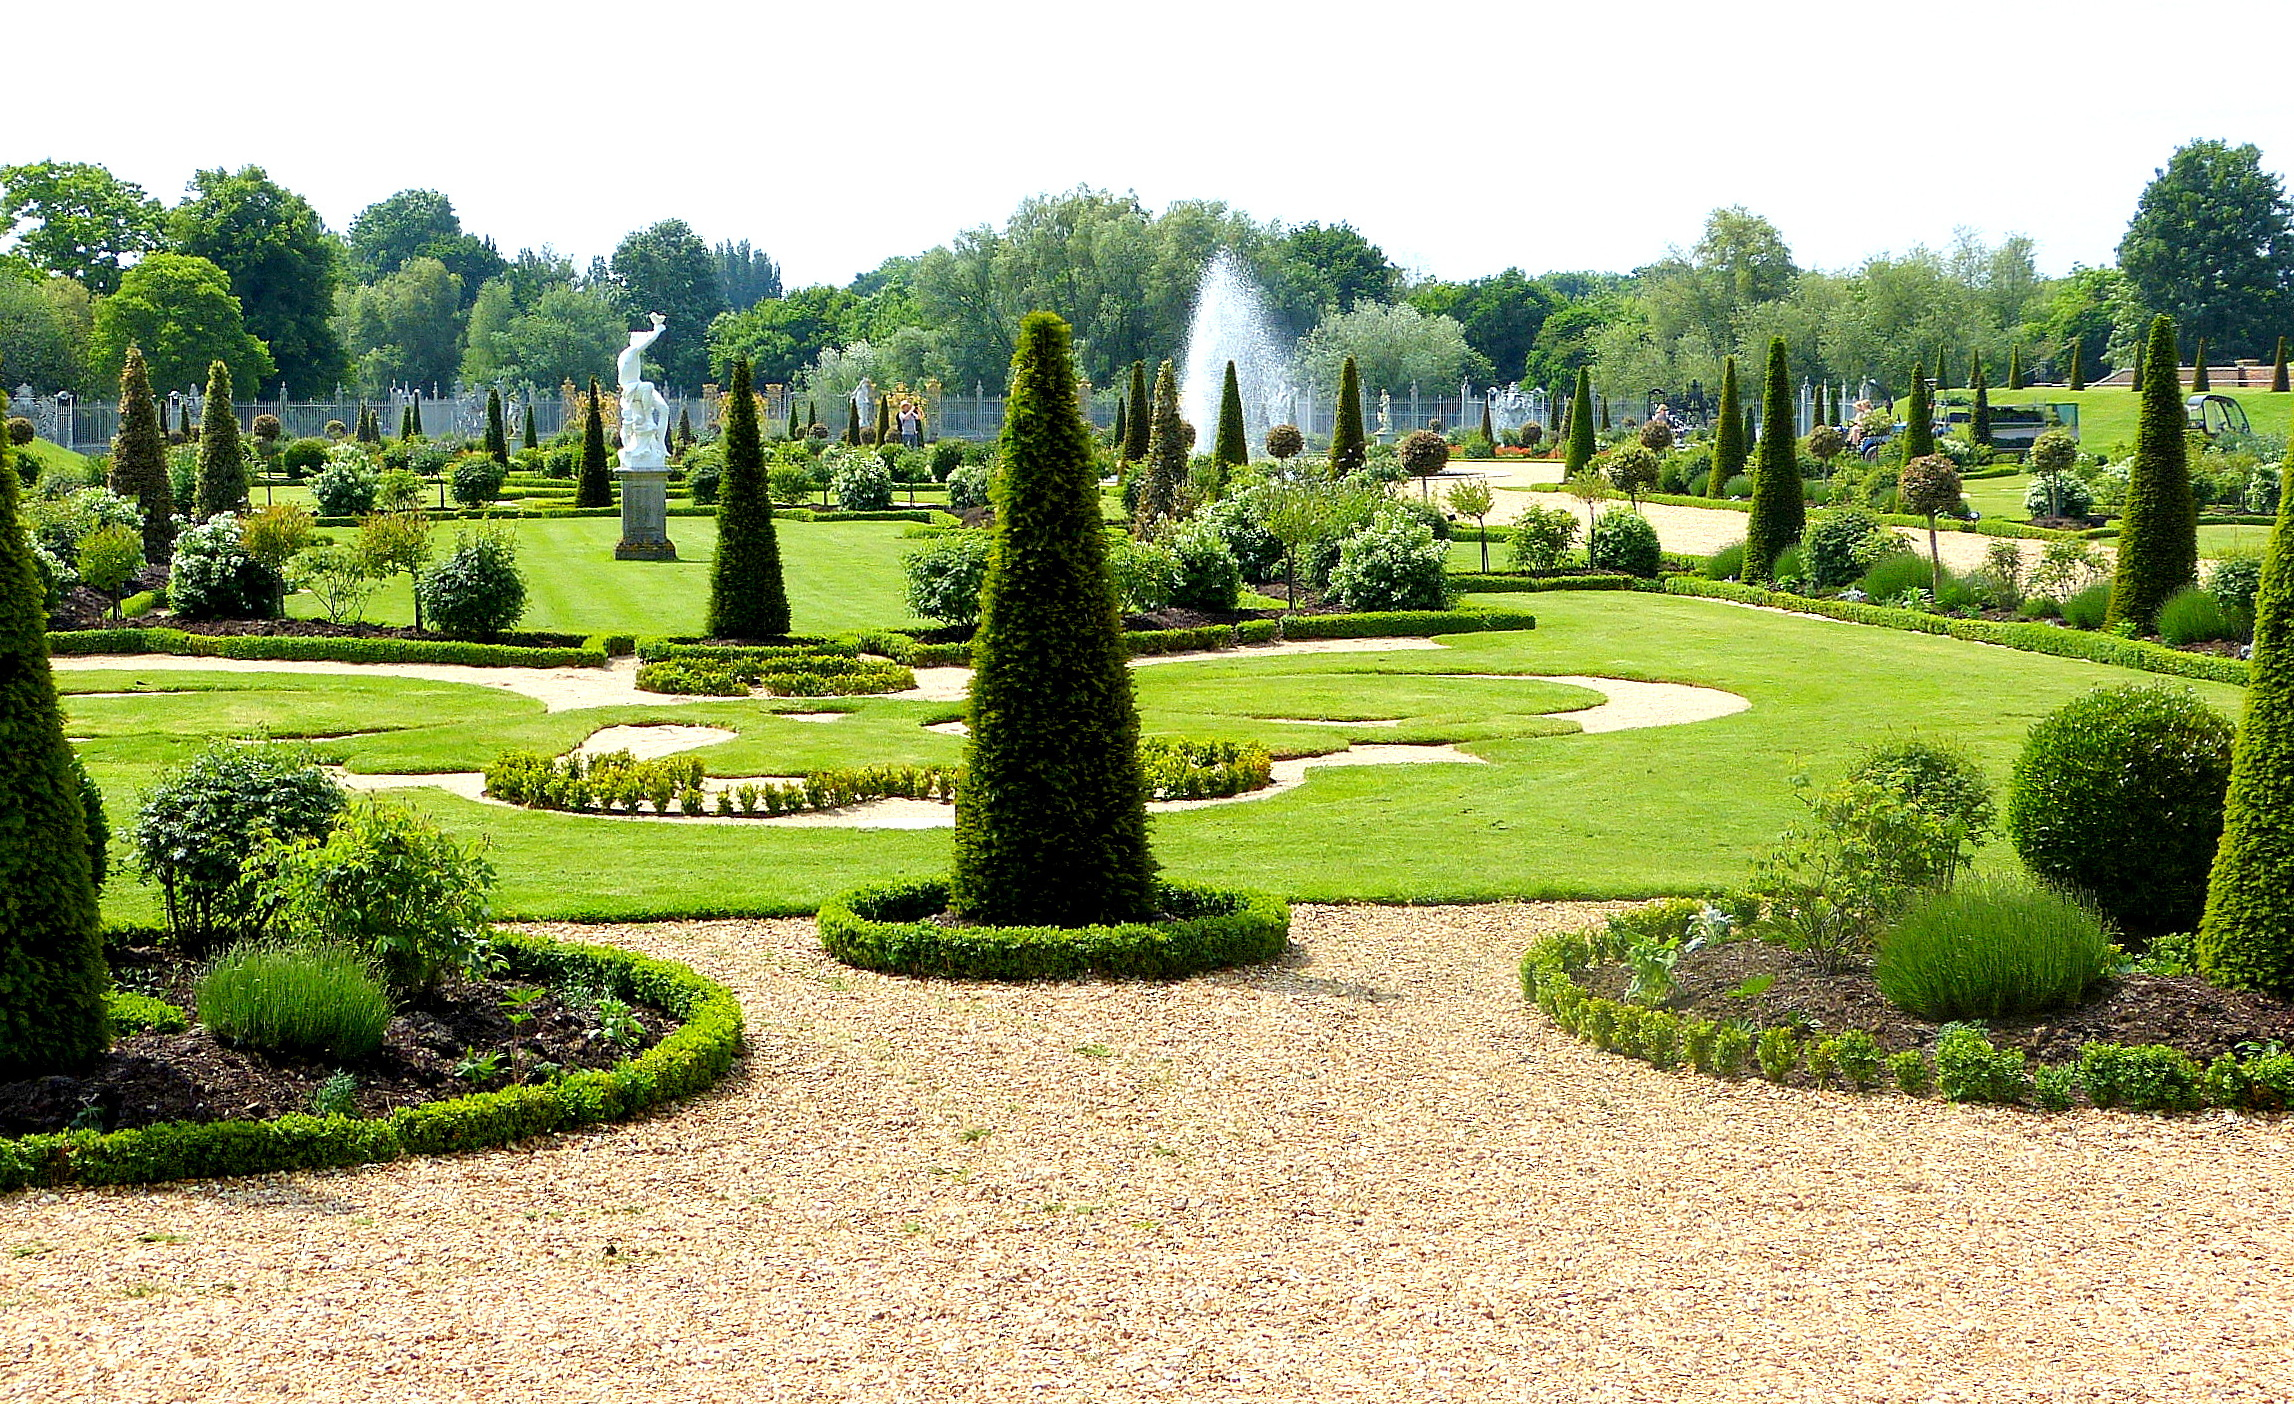 Verdant landscaping surrounds Hampton Court Palac